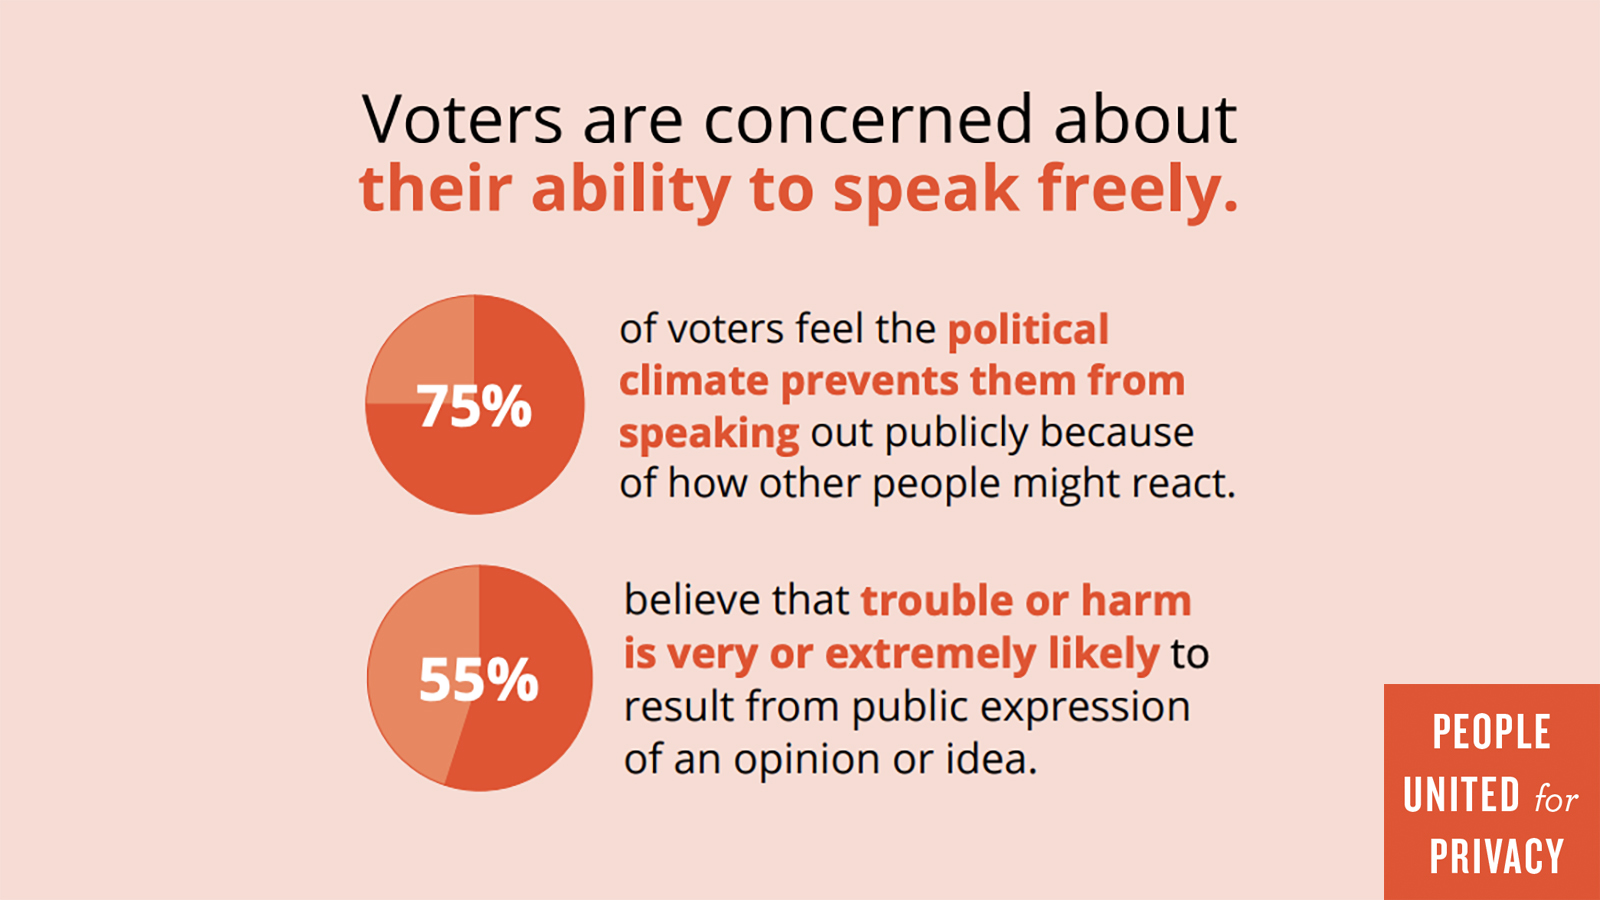 Voters are concerned about their ability to speak freely